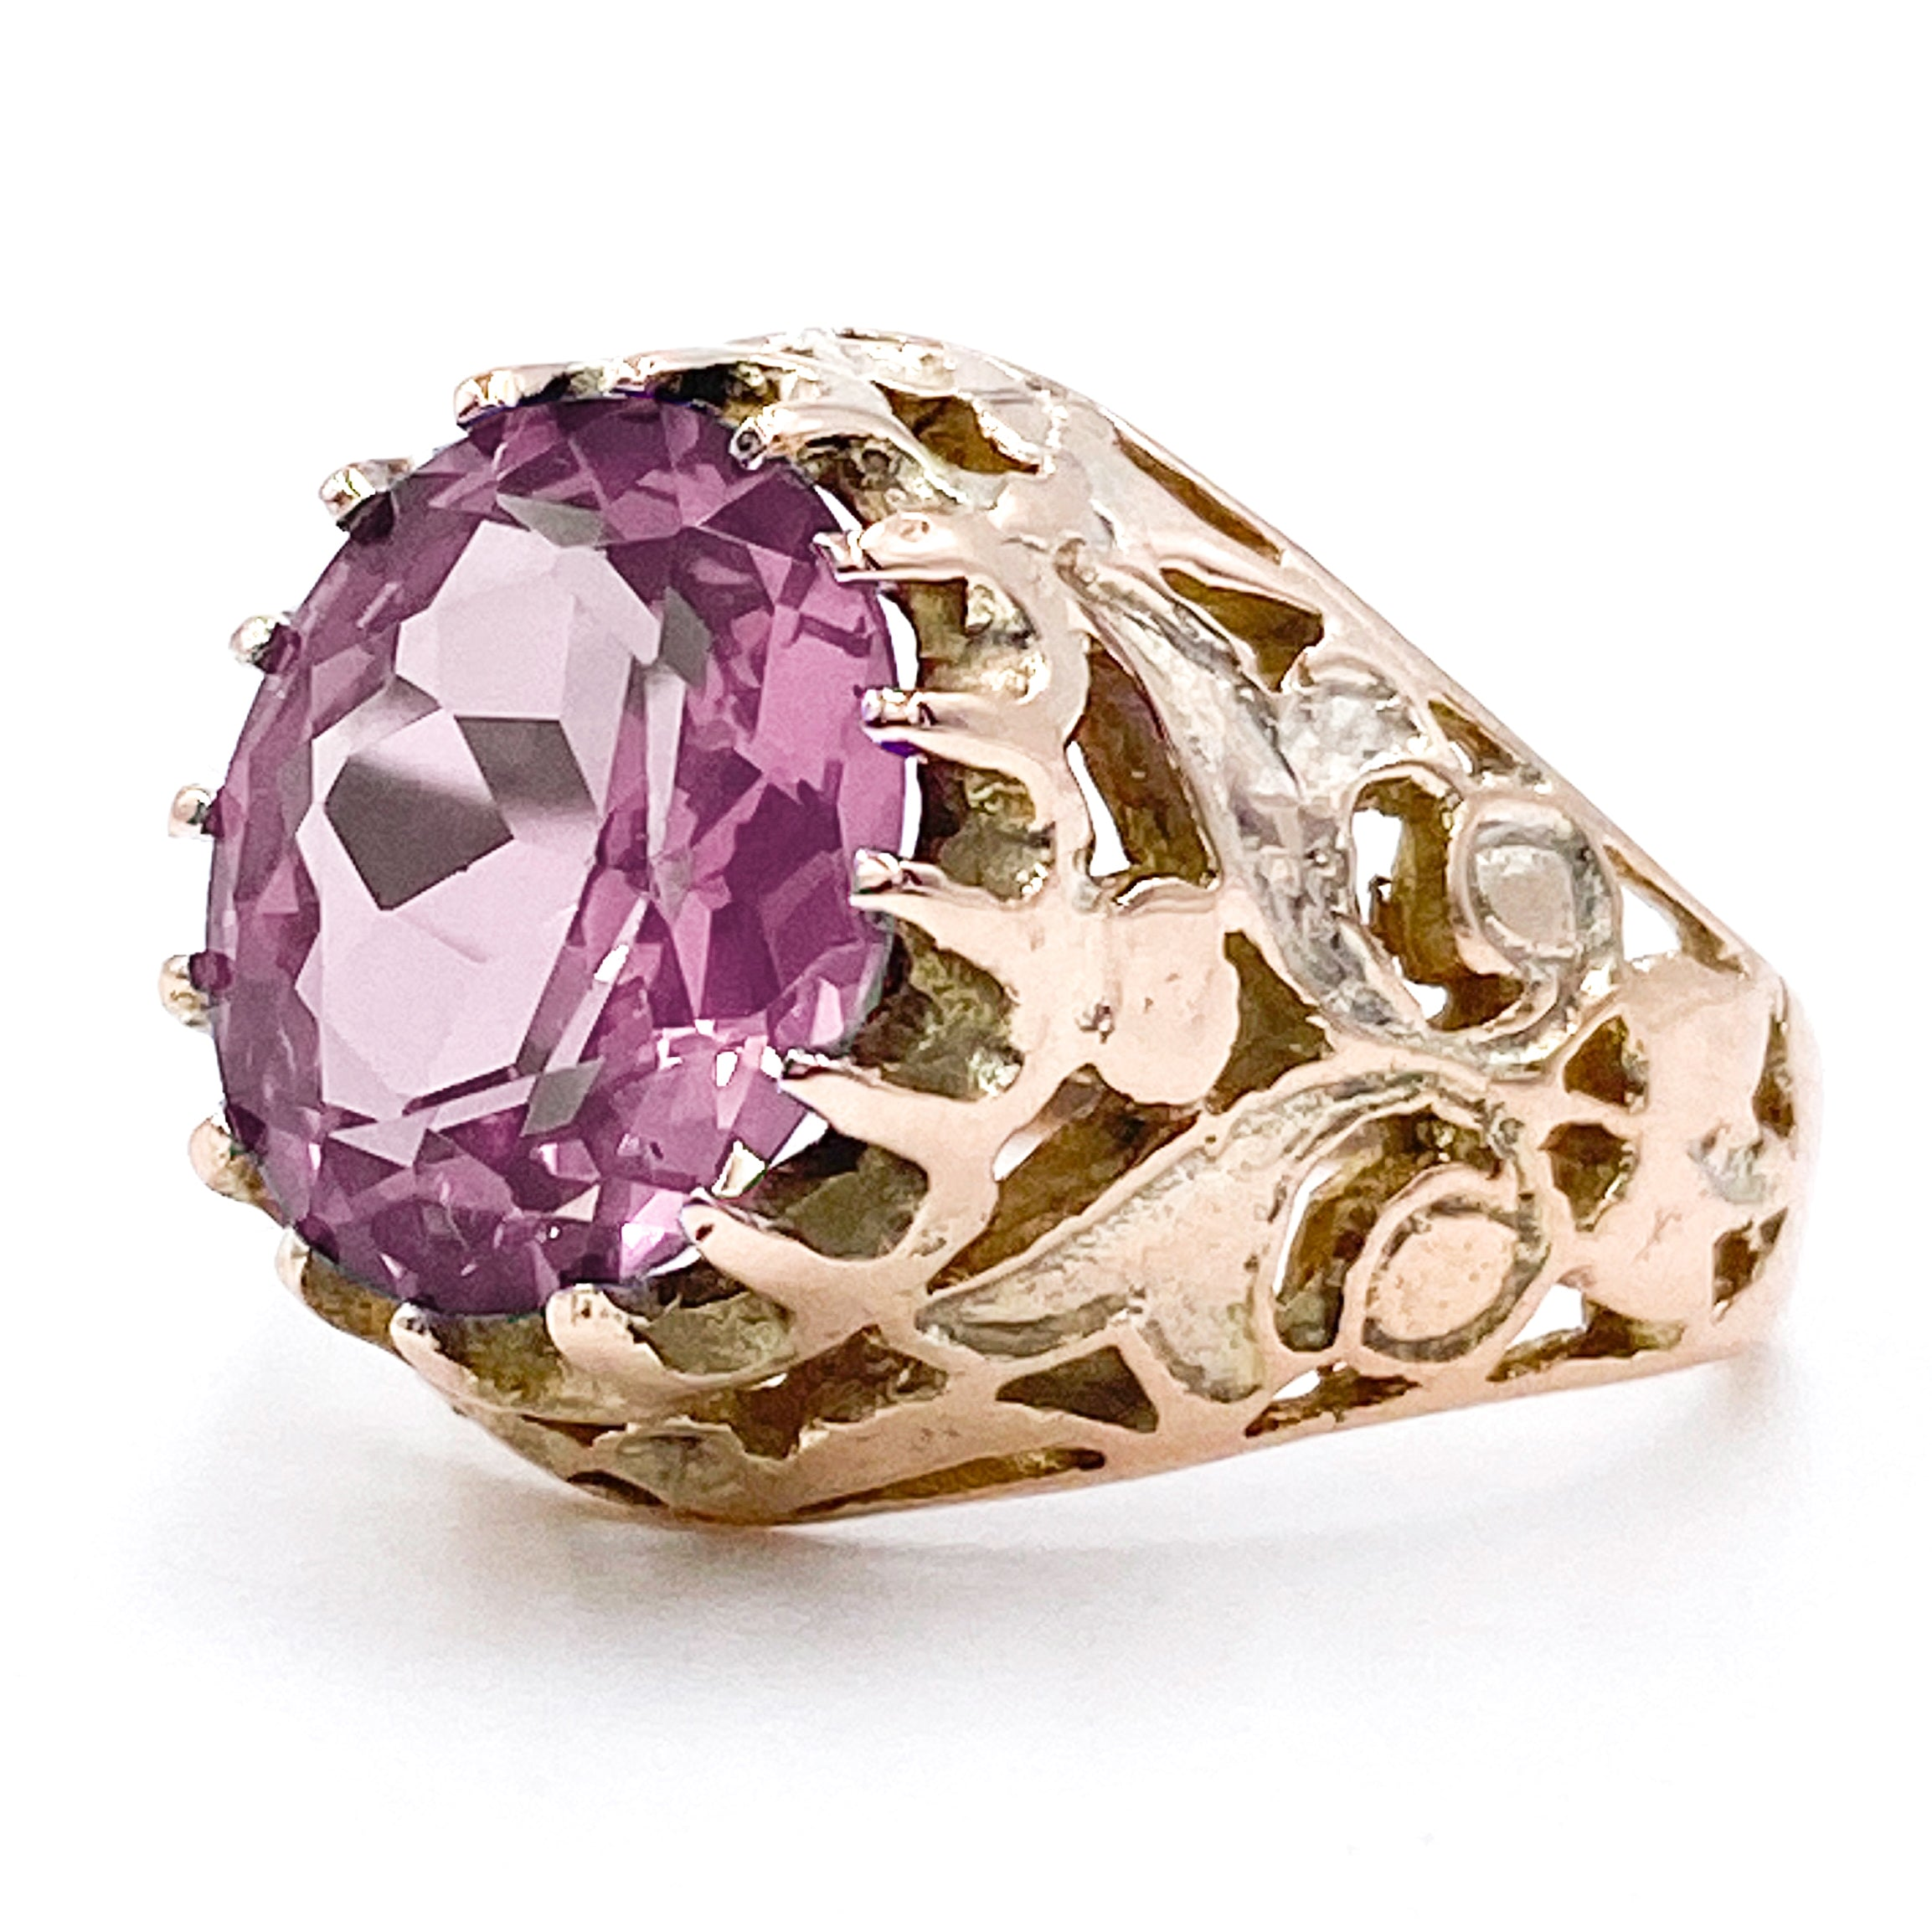 2.5 Carat Synthetic Alexandrite Authentic Art Deco (ca. 1920s) Dinner Ring with Filigree in 12K Gold